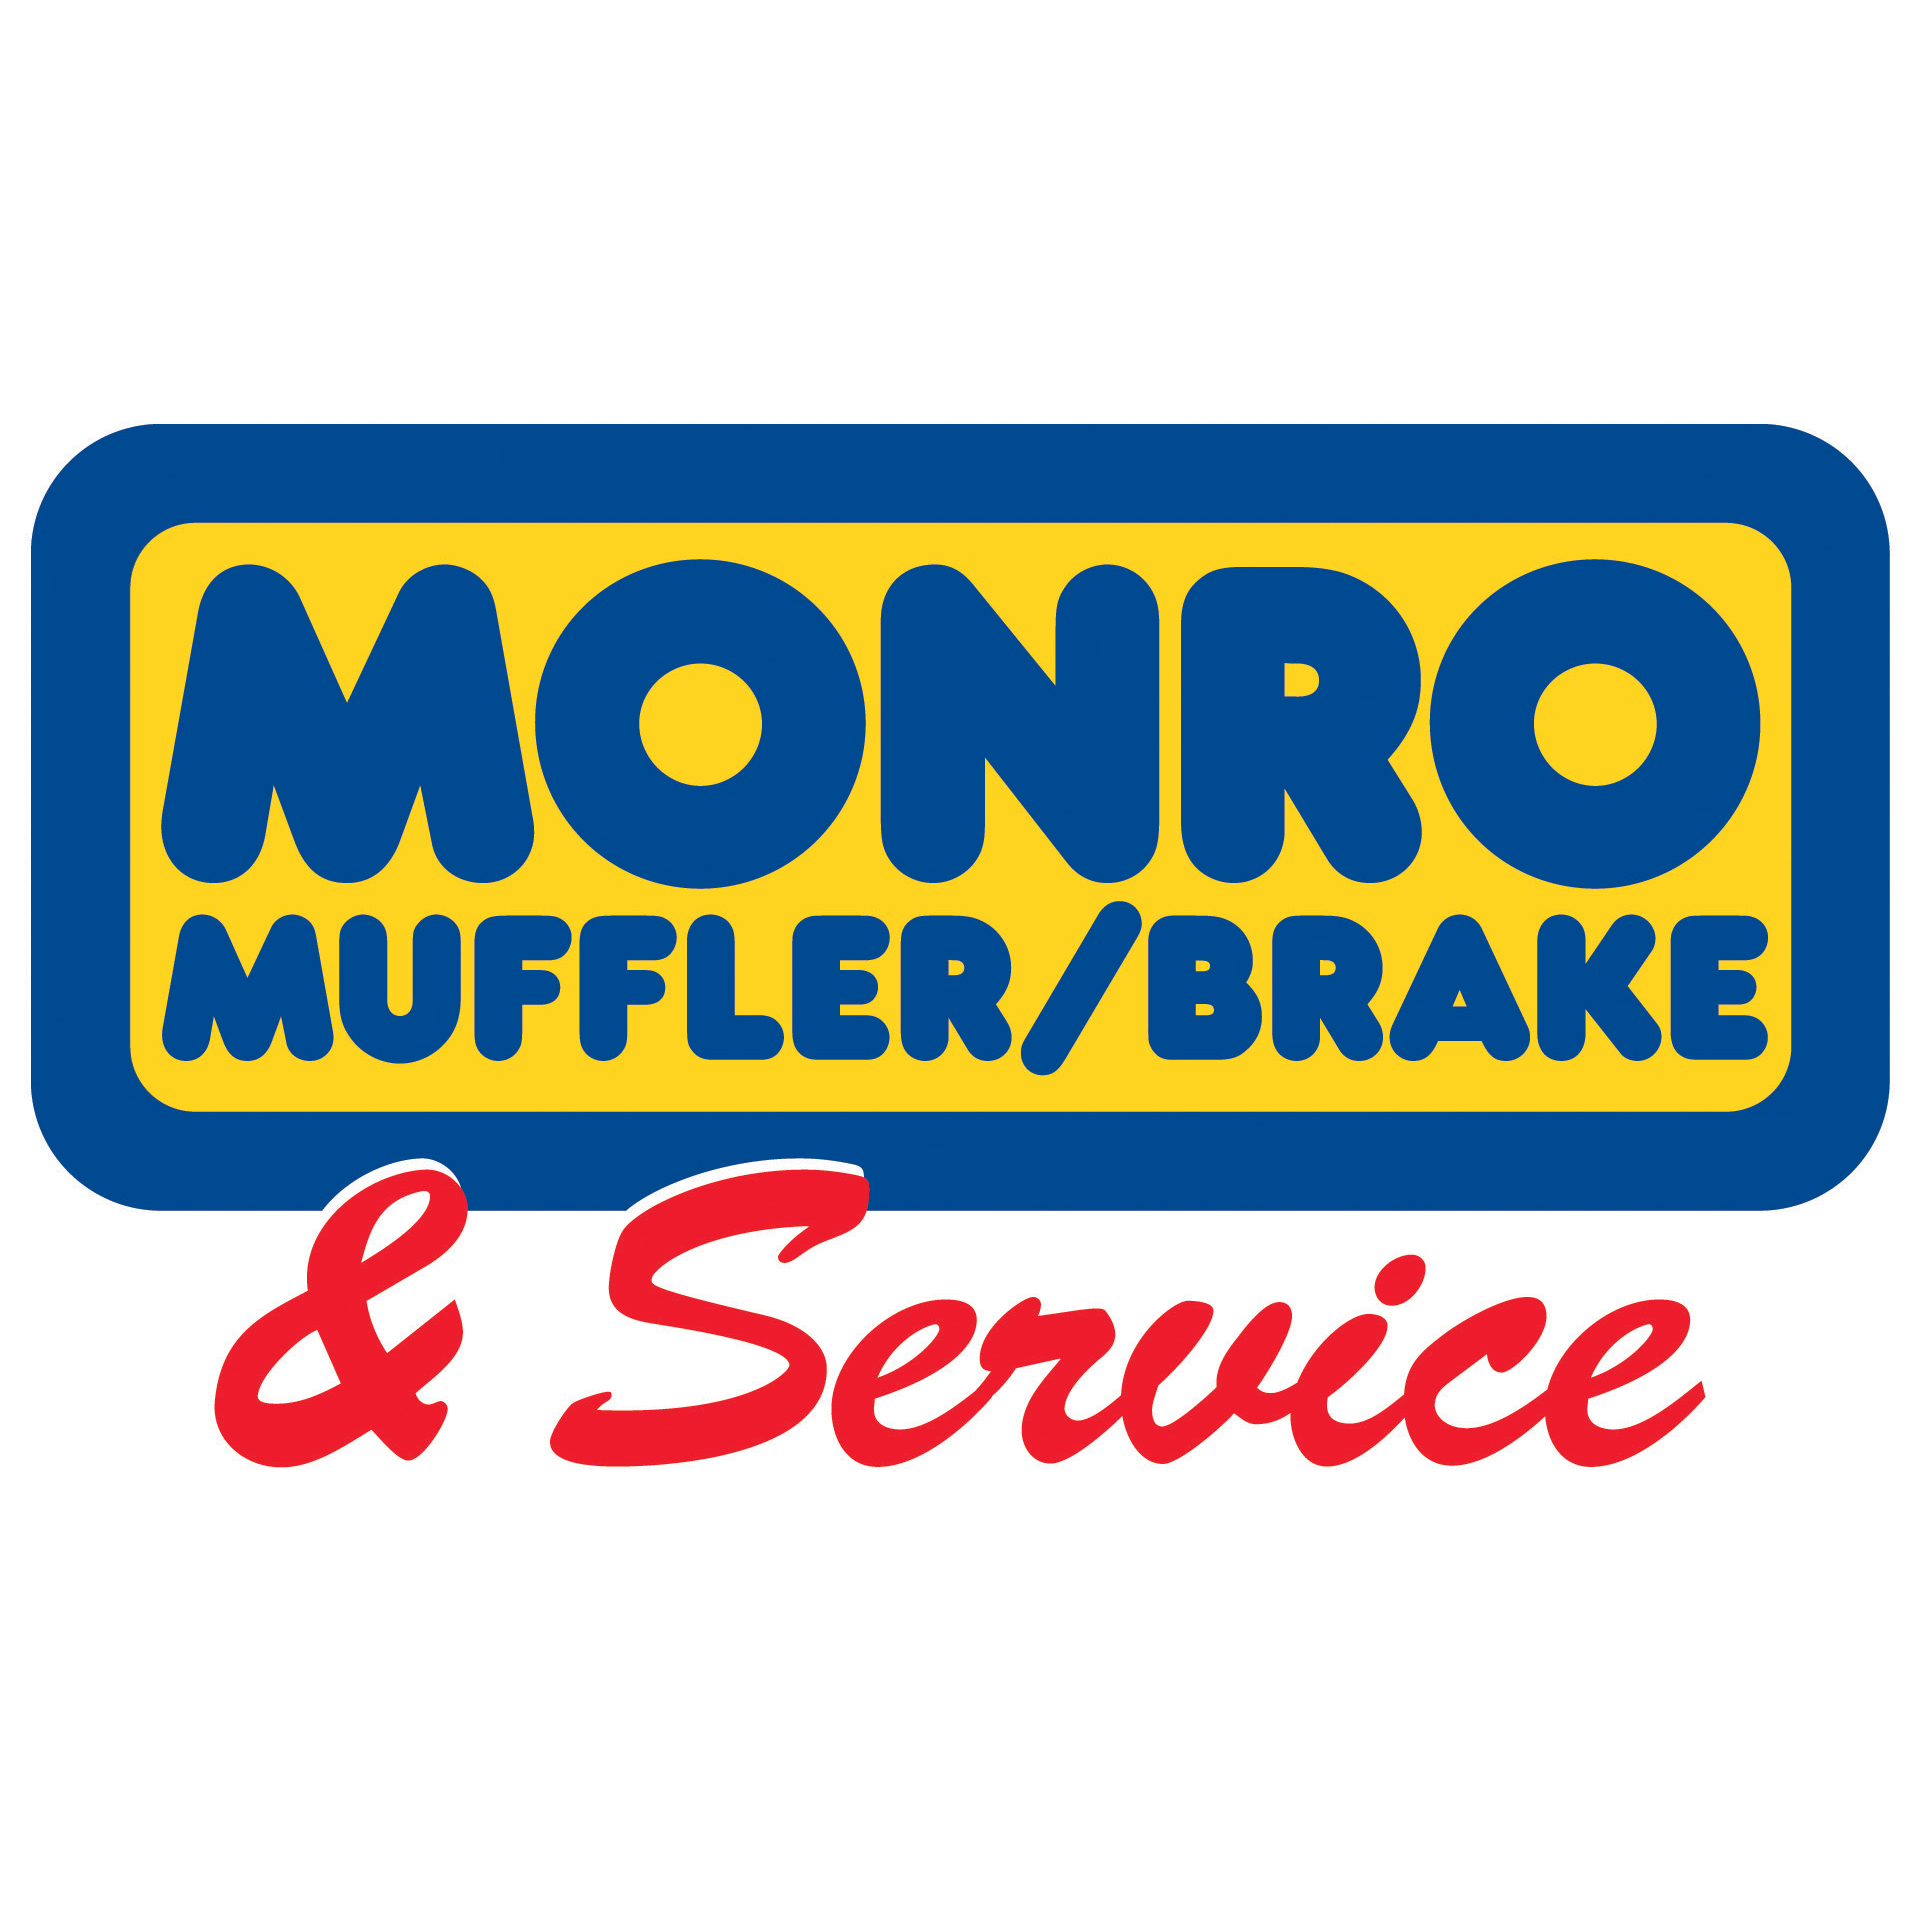 Monro Muffler Brake & Service - Warren, OH - General Auto Repair & Service